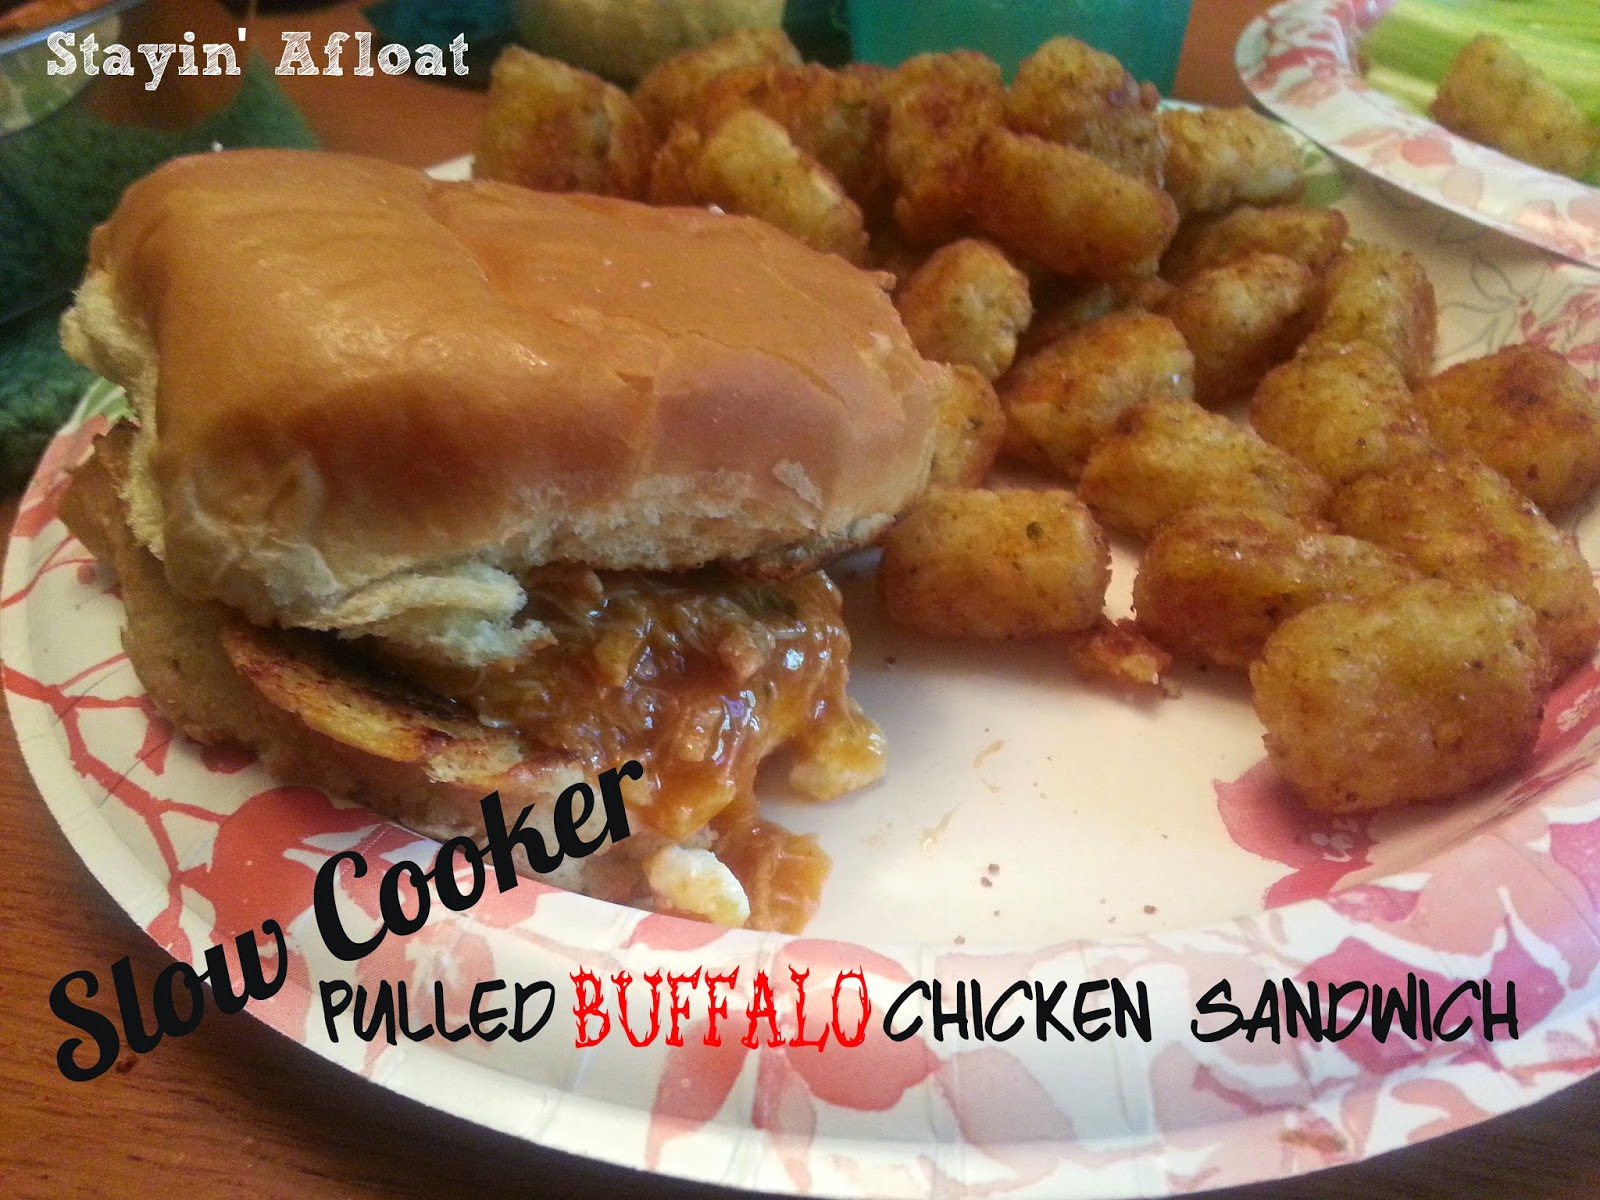 http://www.stayin-afloat.com/p/pulled-buffalo-chicken-sandwich.html